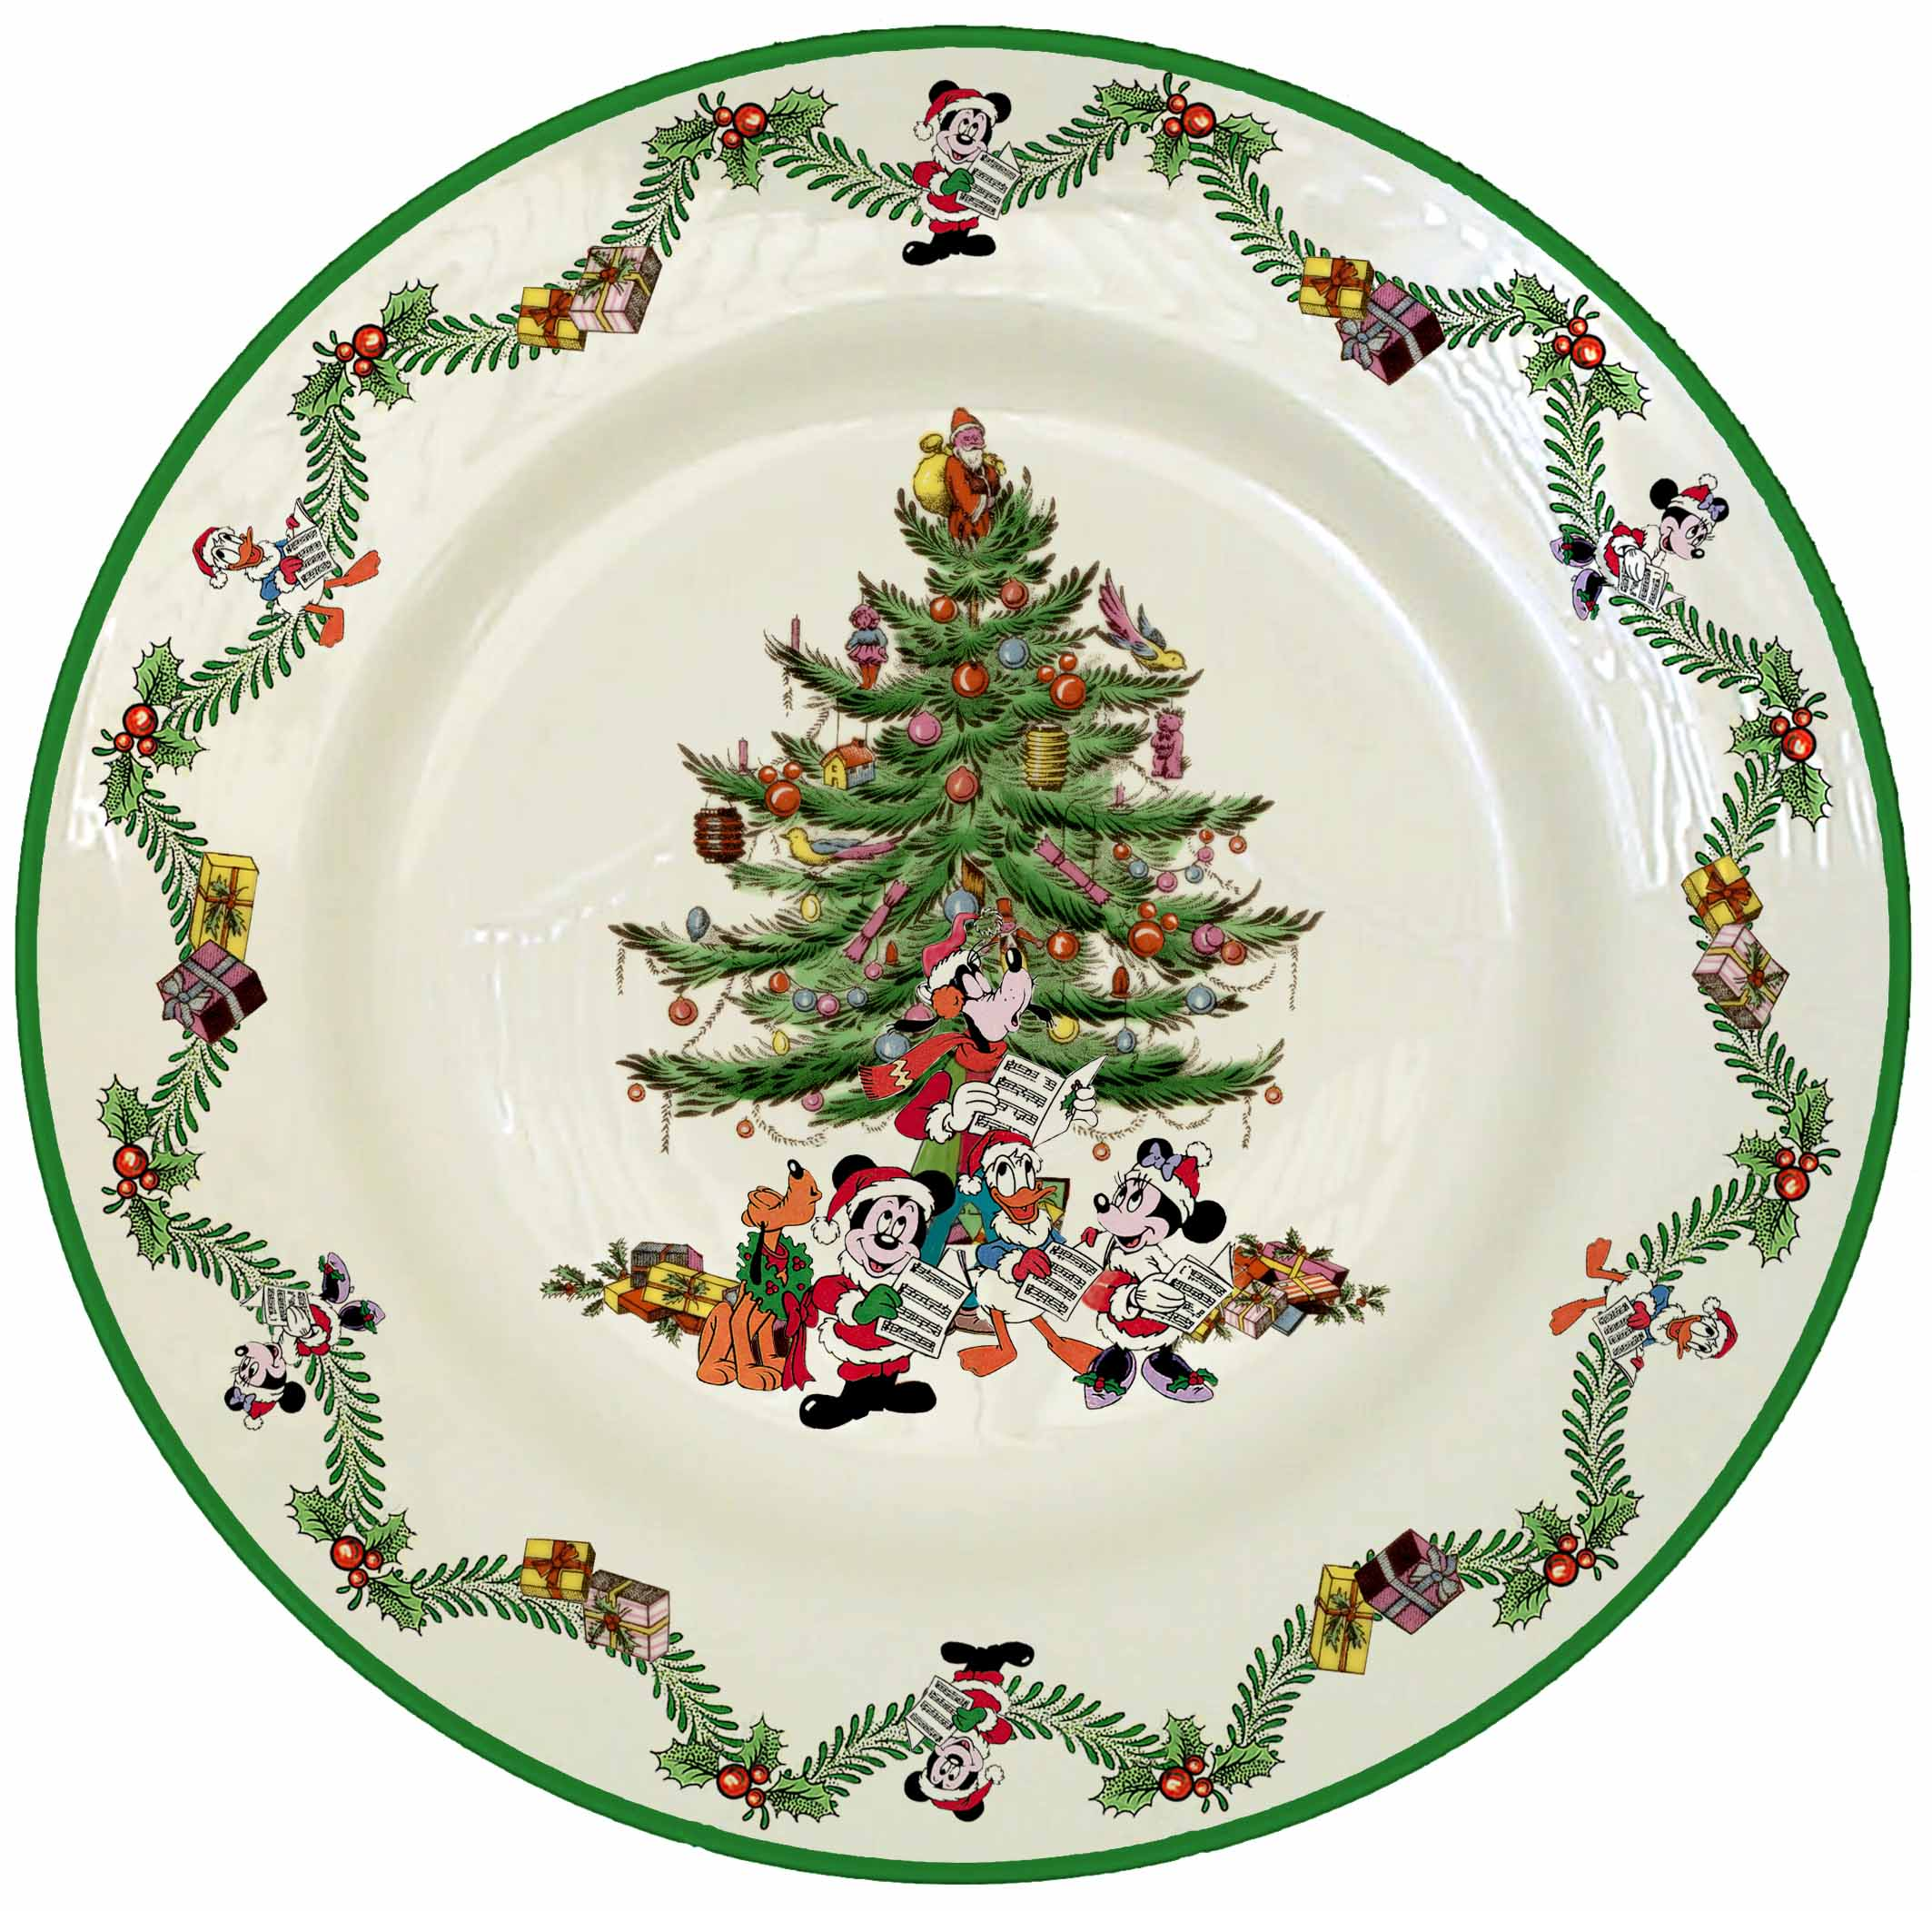 Spode Disney Christmas Collection Set Spode Disney 12  Service Plate 30CTD085 ...  sc 1 st  The Enchanted Castle Offering Licensed Disney Producs and Animation Art & The Enchanted Castle: Offering Licensed Disney Producs and Animation Art